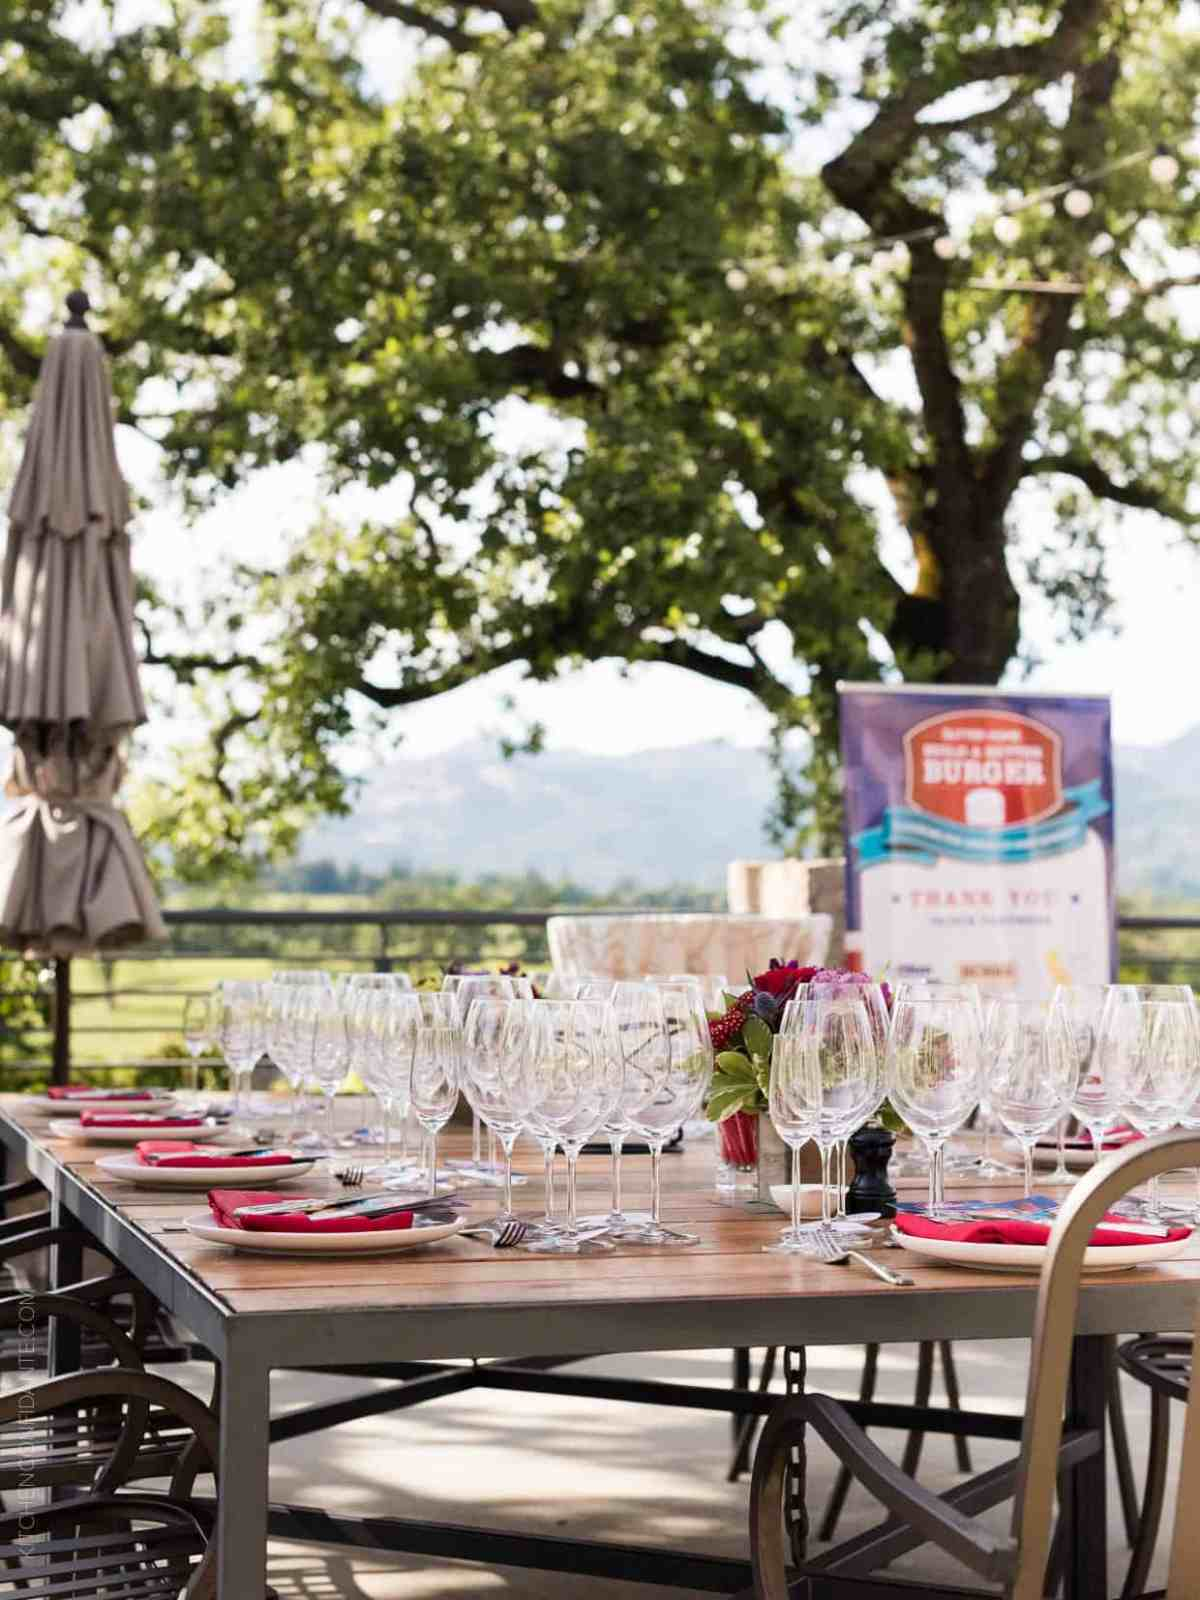 Outdoor table setting at the Sutter Home 25th Annual Build a Better Burger Cookoff.